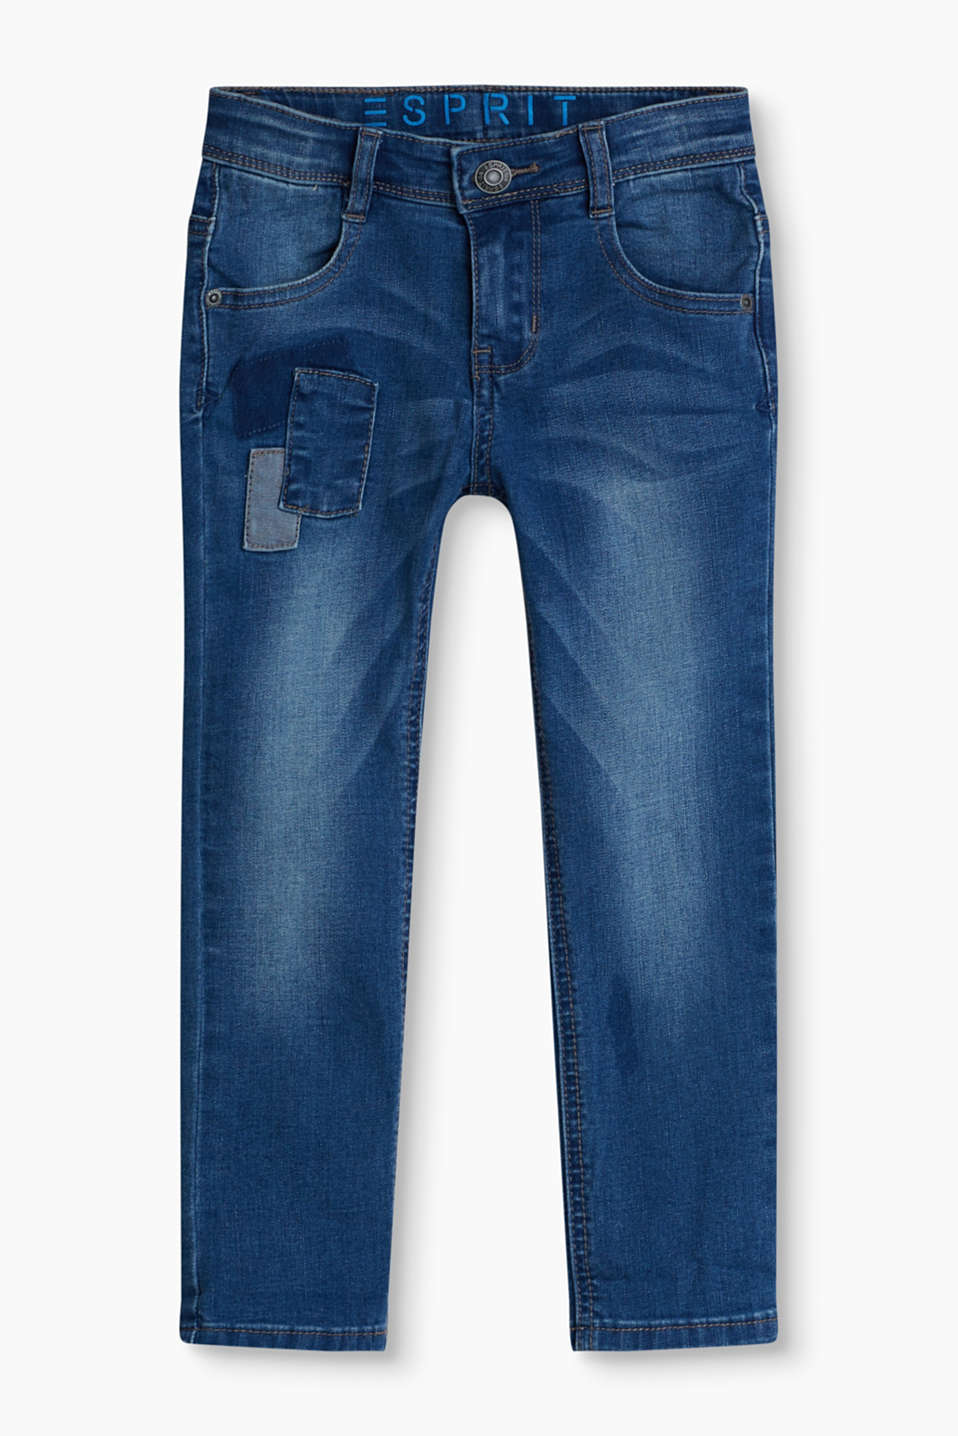 Jeans in a casual garment wash with an adjustable waistband, in a patchwork look